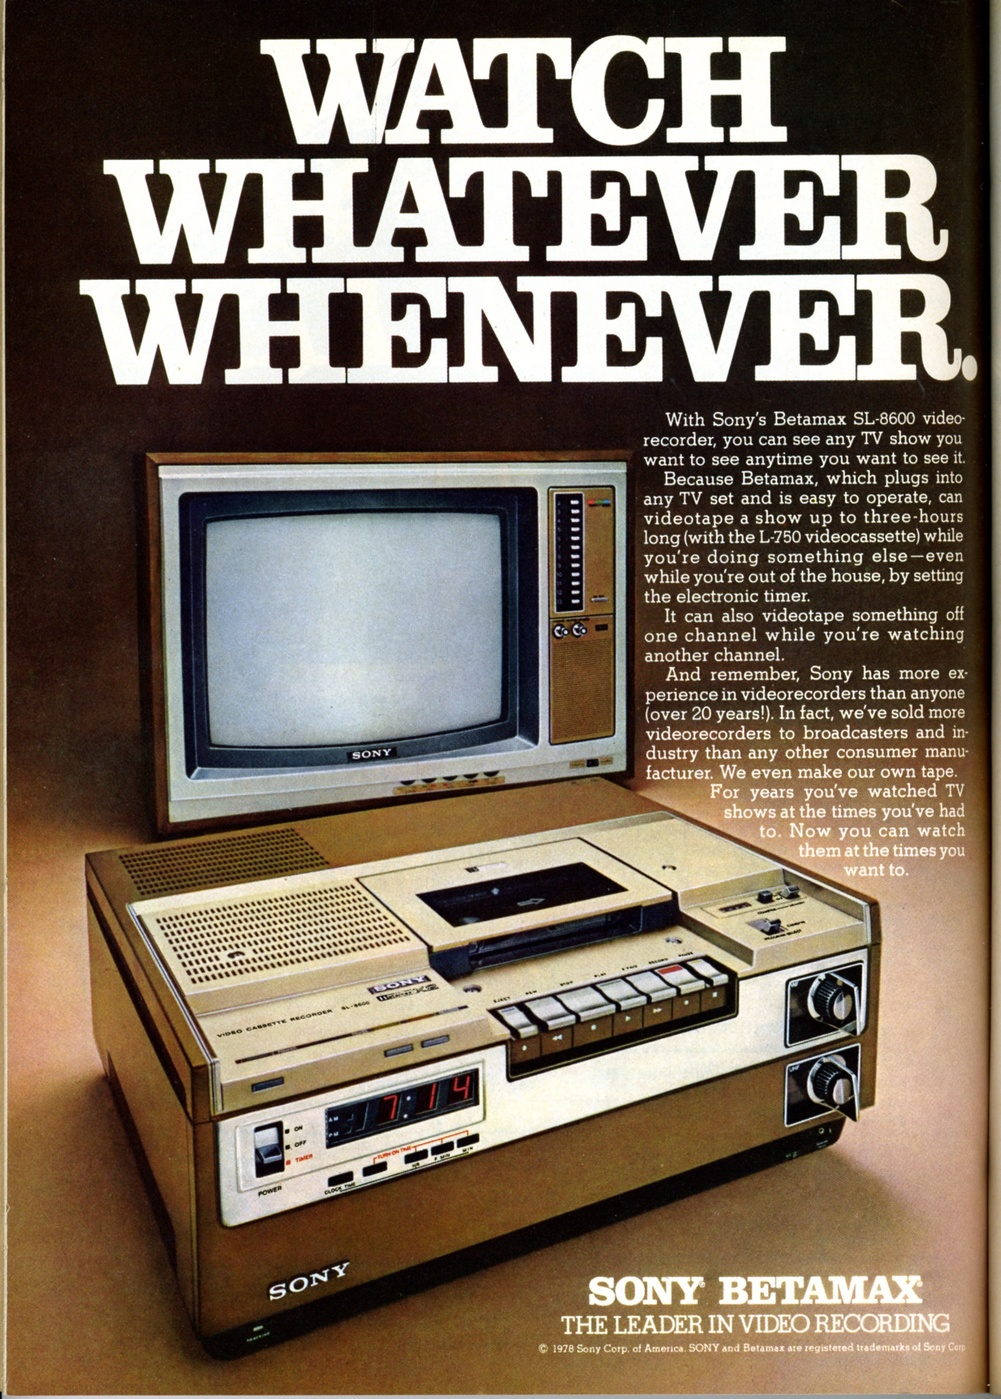 The end of sonys betamax video tape but the format wars continue betamax battles uptake and legality publicscrutiny